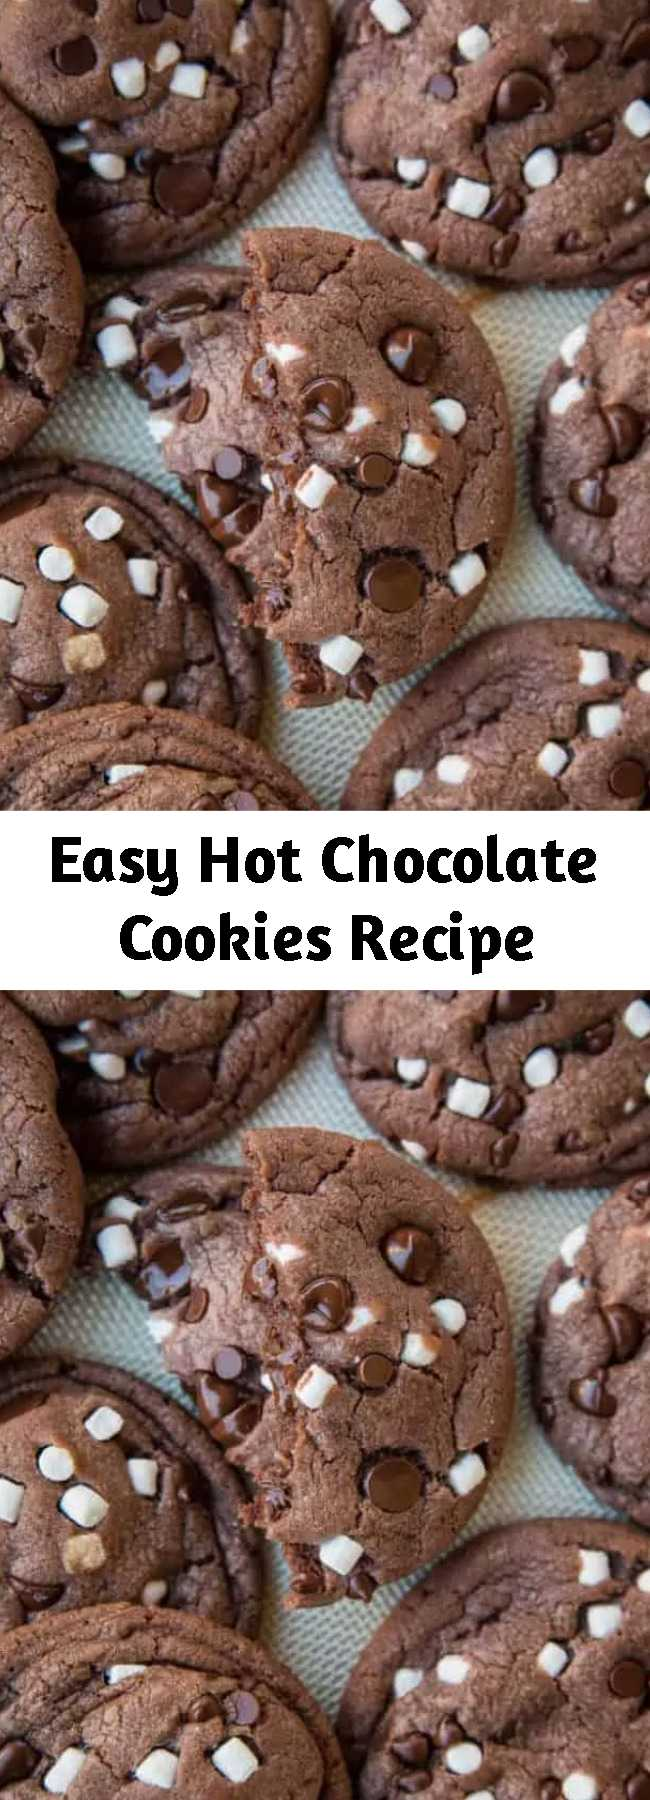 Easy Hot Chocolate Cookies Recipe - These easy Hot Chocolate Cookies are always a hit! Made with real hot cocoa, this is always a popular winter or Christmas cookie and is perfect for cookie exchanges.